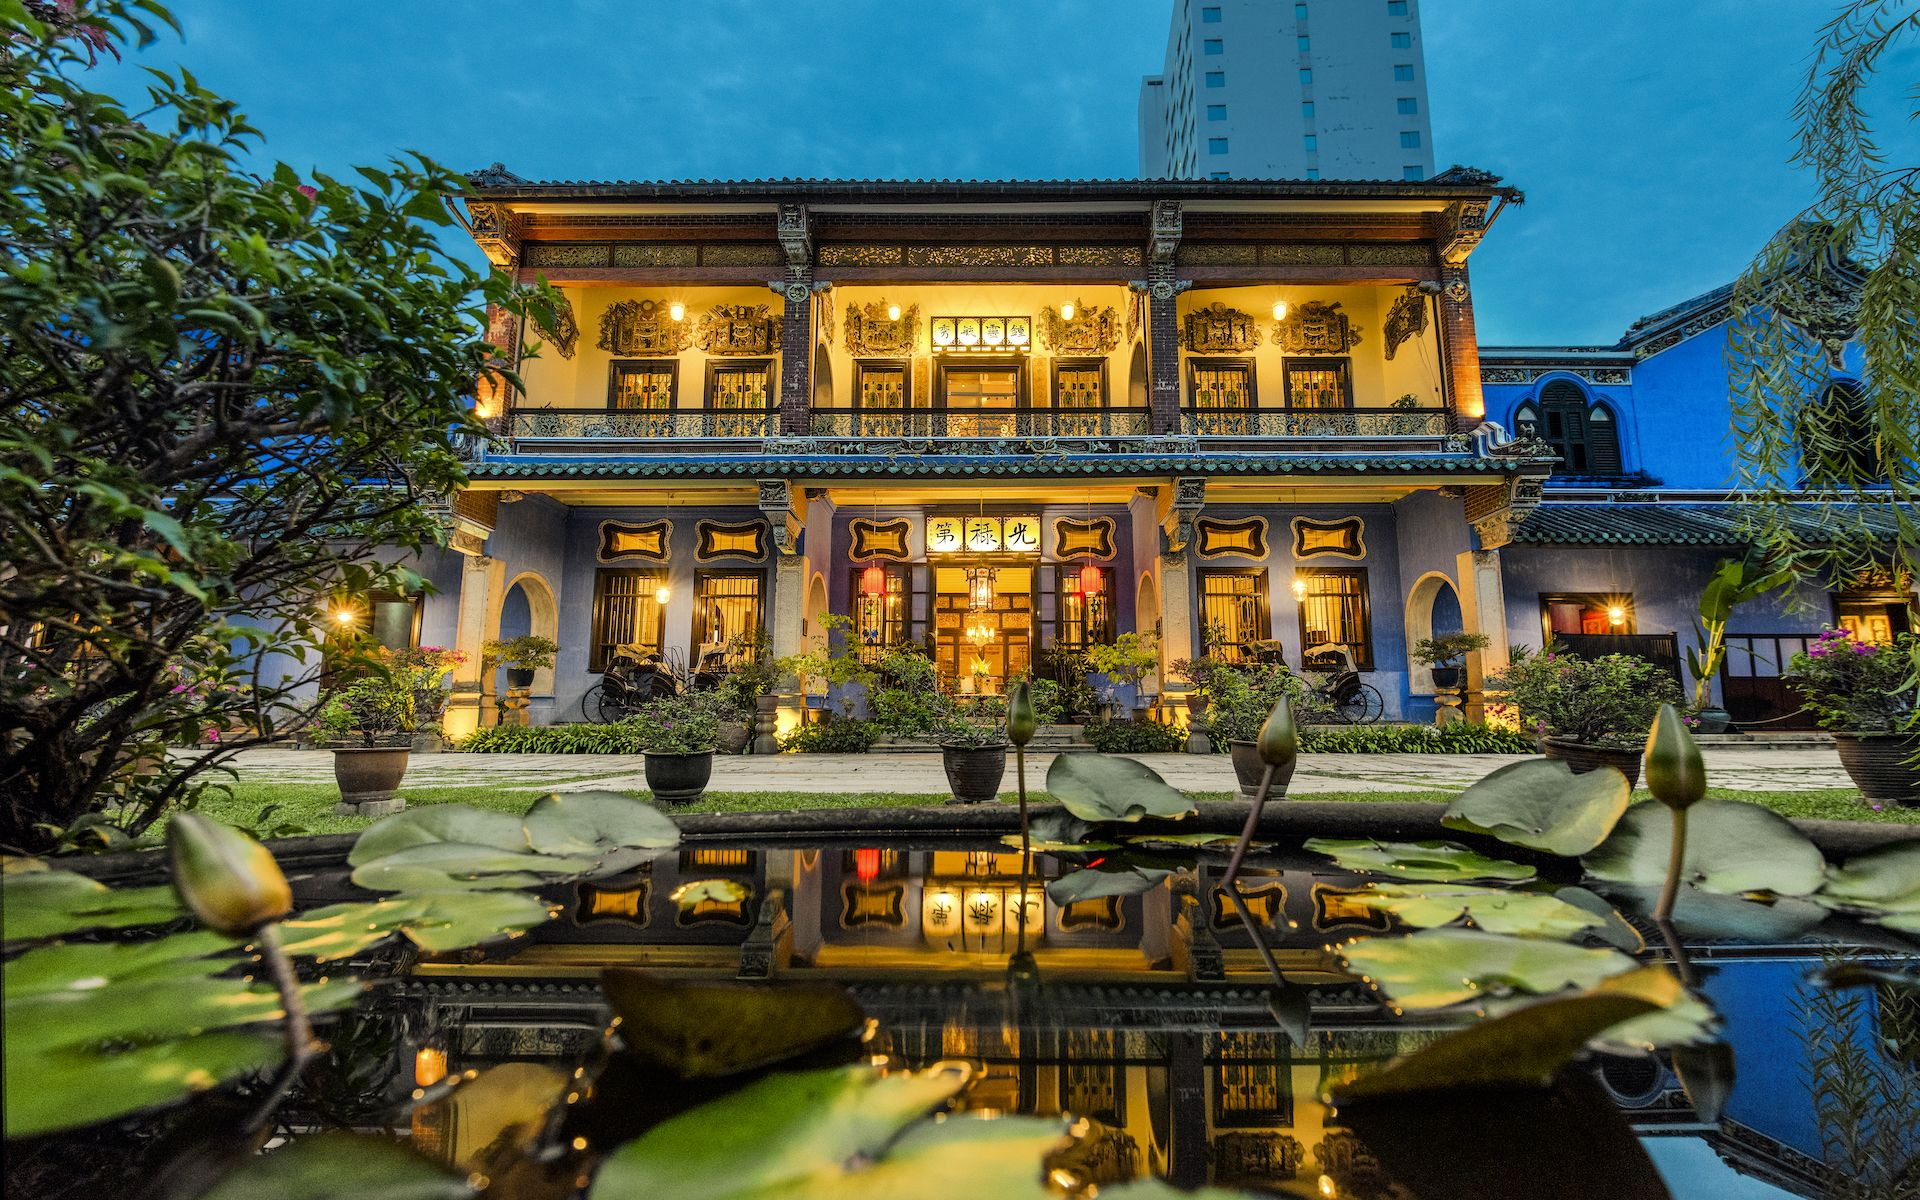 The stunningly restored Cheong Fatt Tze Mansion reveals the historical site in all its glory